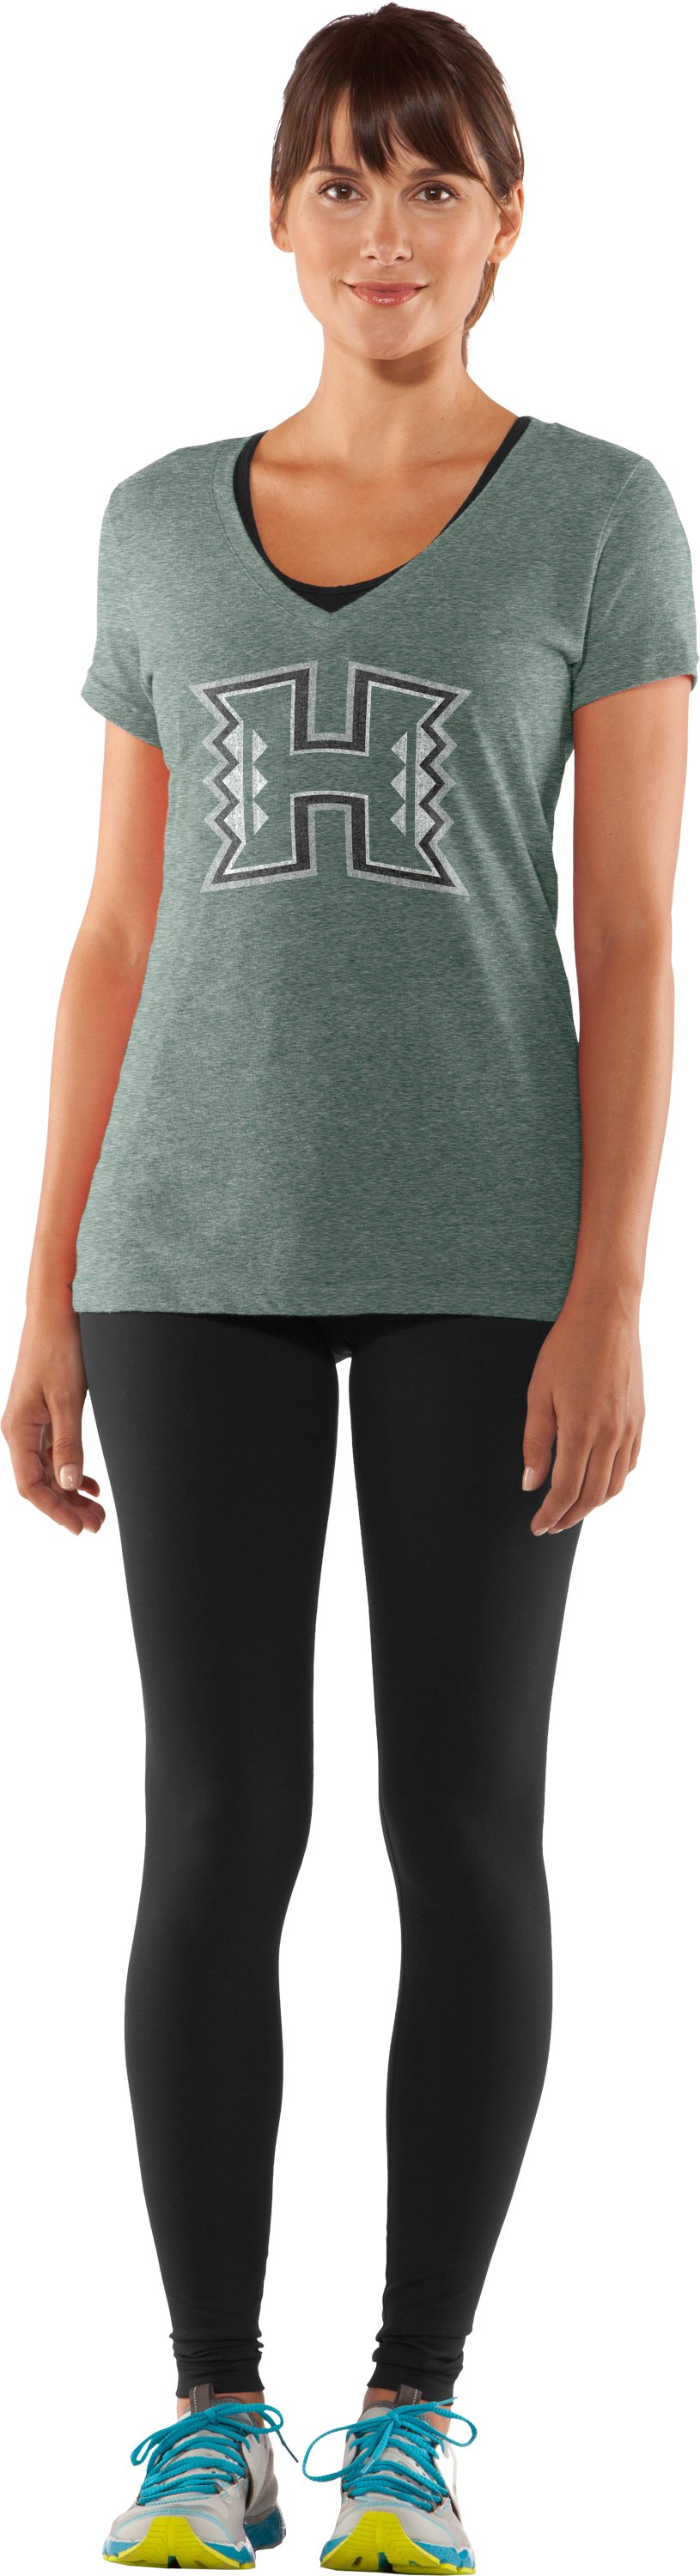 Women's Hawai'i Under Armour® Legacy T-Shirt, Forest Green